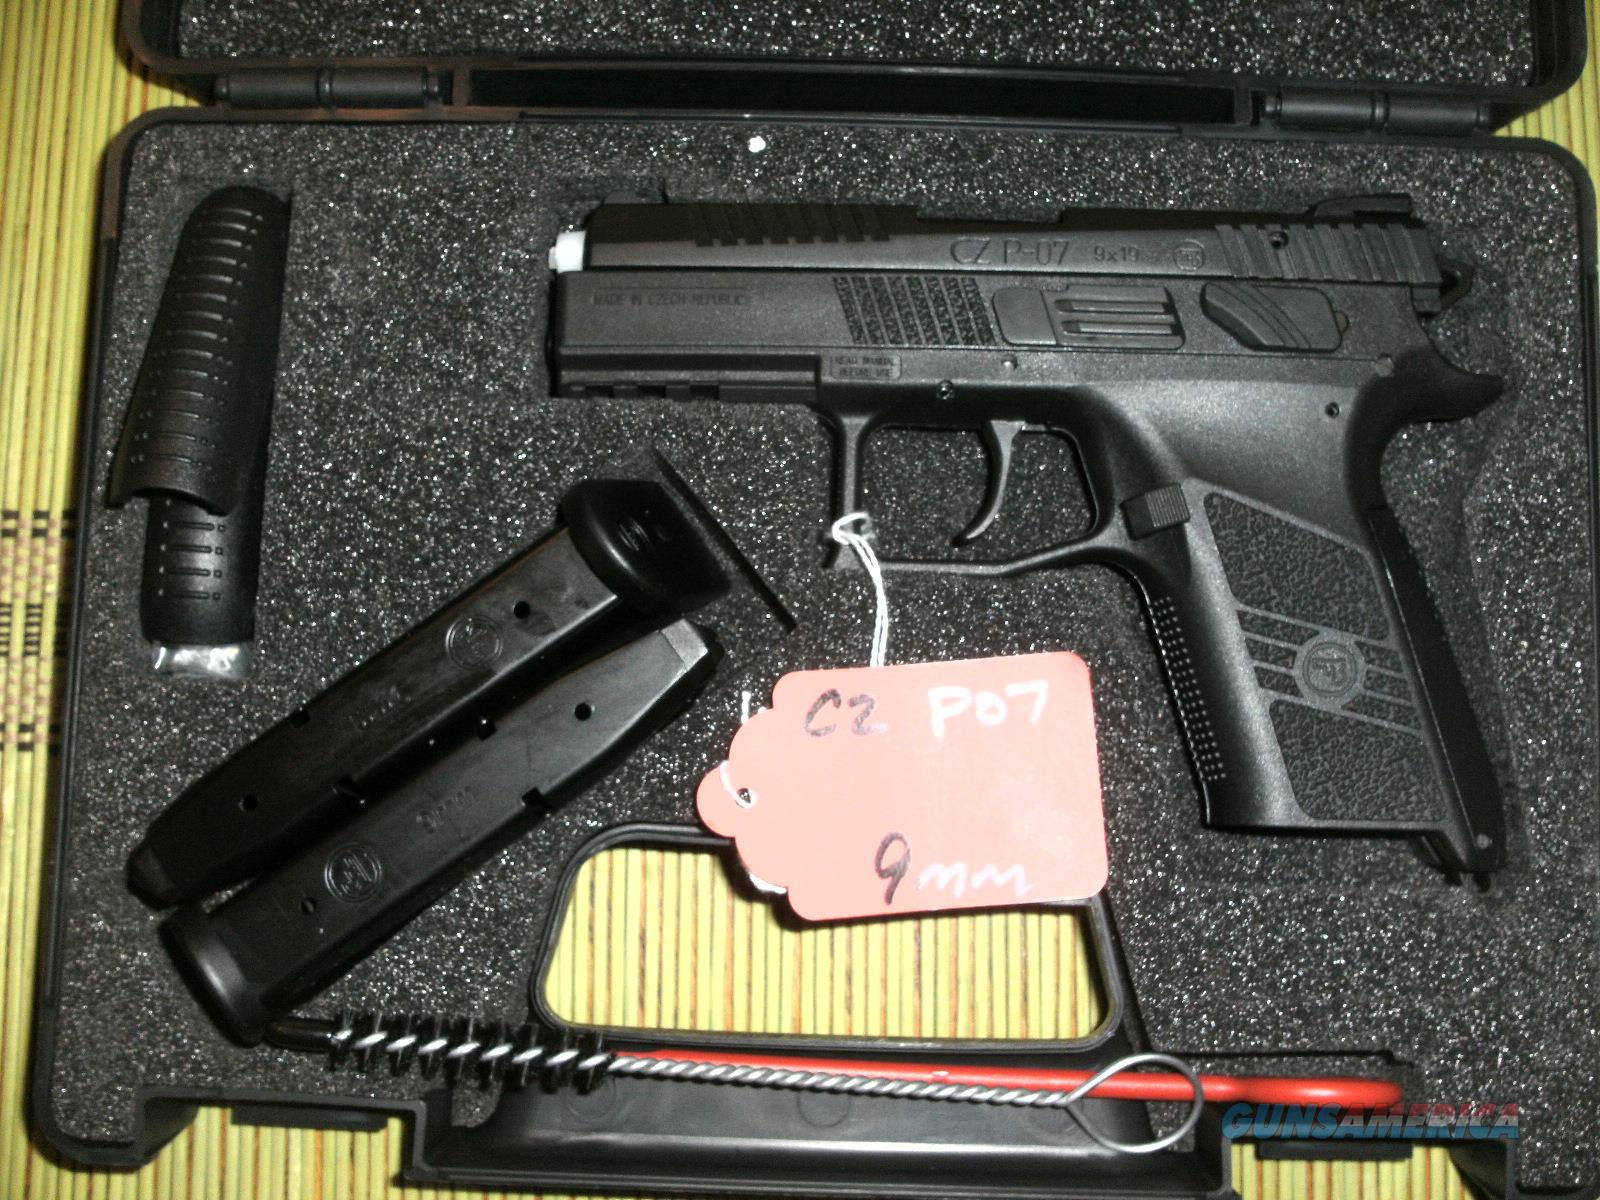 CZ P07 W/2 15 RD MAGS, BACKSTRAPS AND CASE - FAST PRIORITY SHIPPING - TXPAT  ARMORY LLC